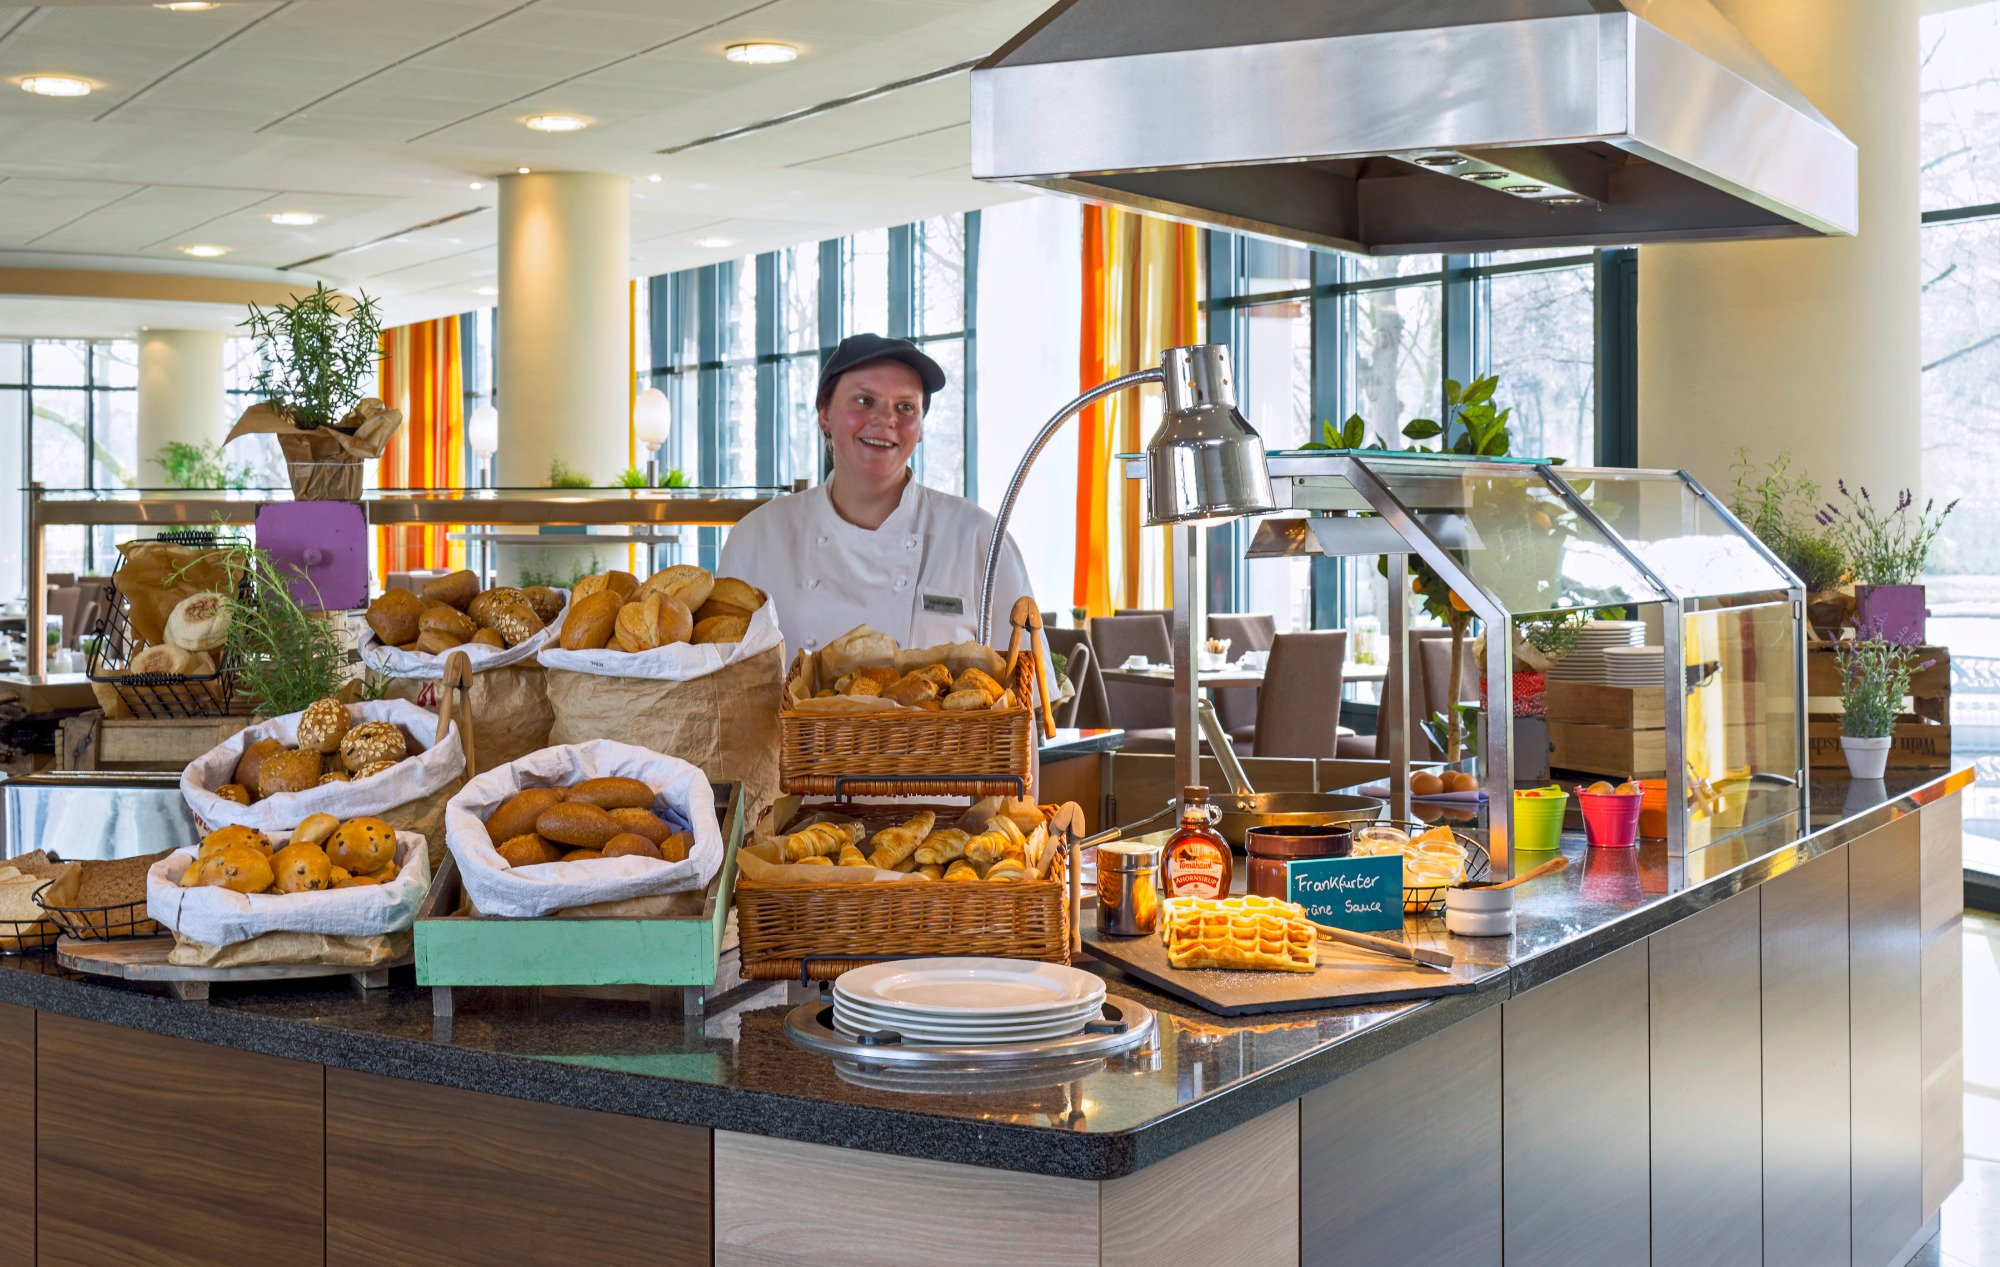 Park Inn by Radisson Koeln City West